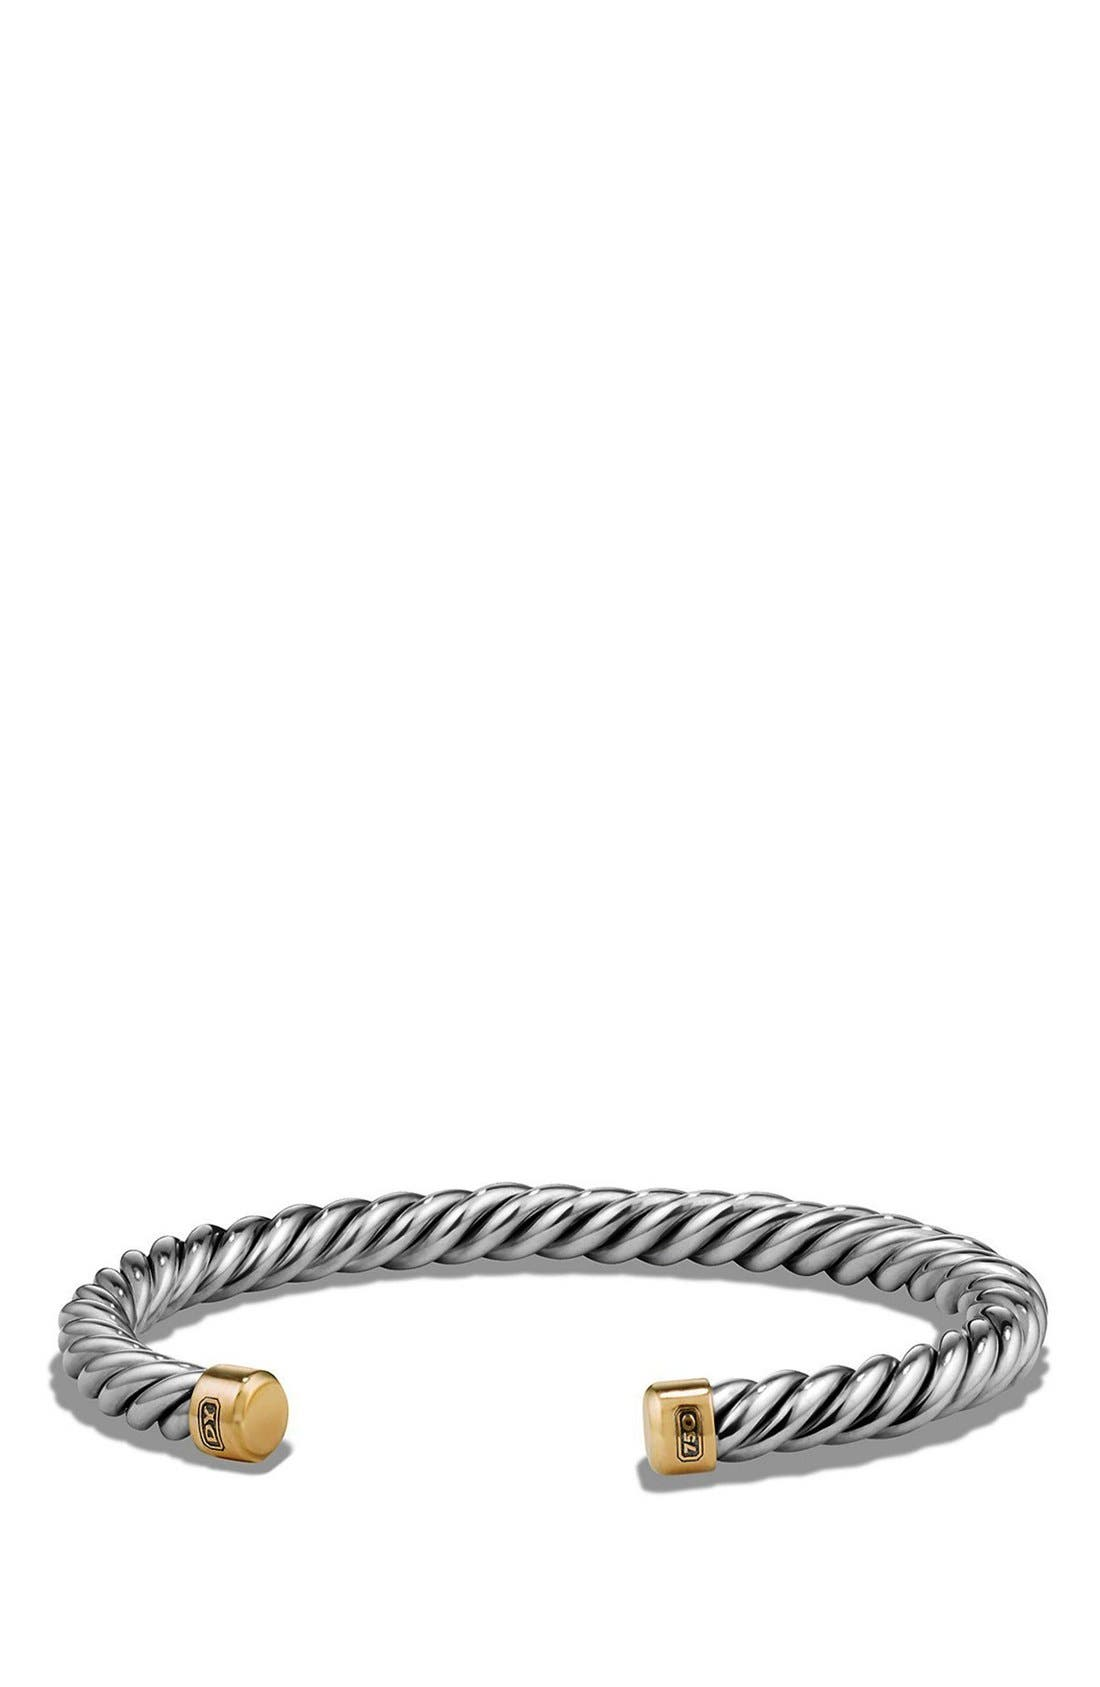 'Cable Classics' Cuff Bracelet with 18K Gold,                         Main,                         color, Silver/ Gold